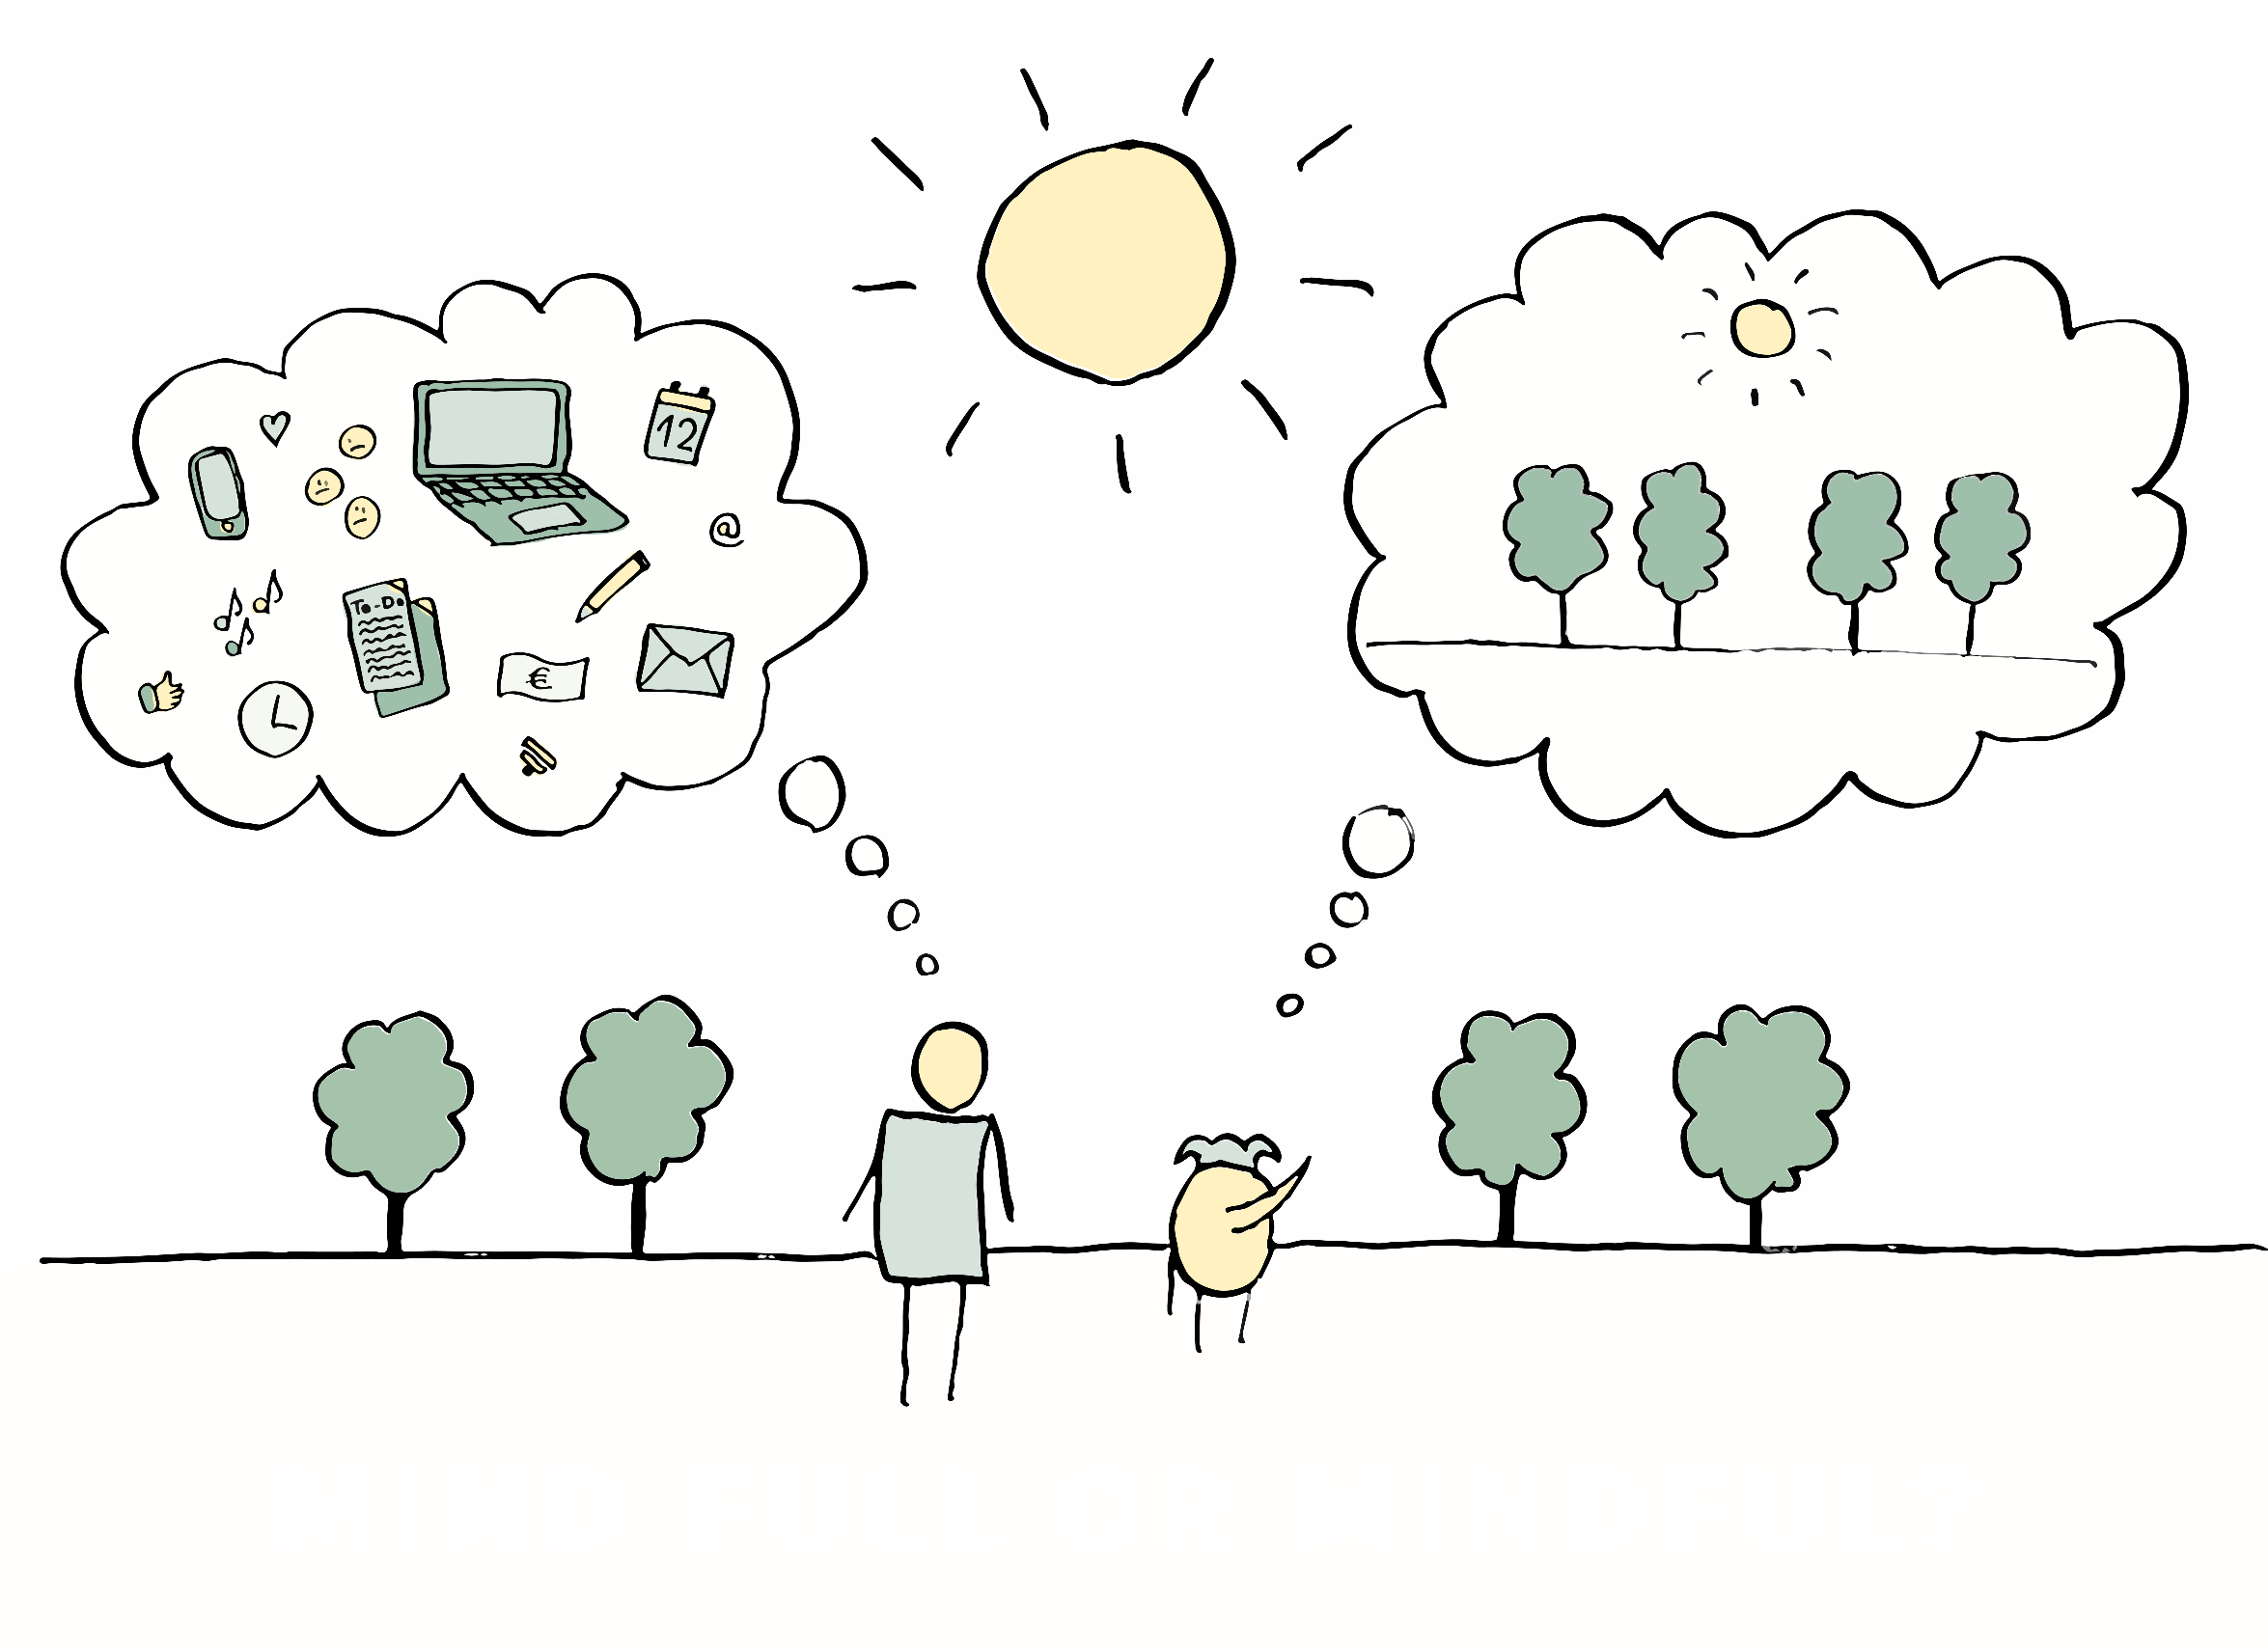 mind full or mindful - Achtsamkeit - MBSR - Suzan Wolf